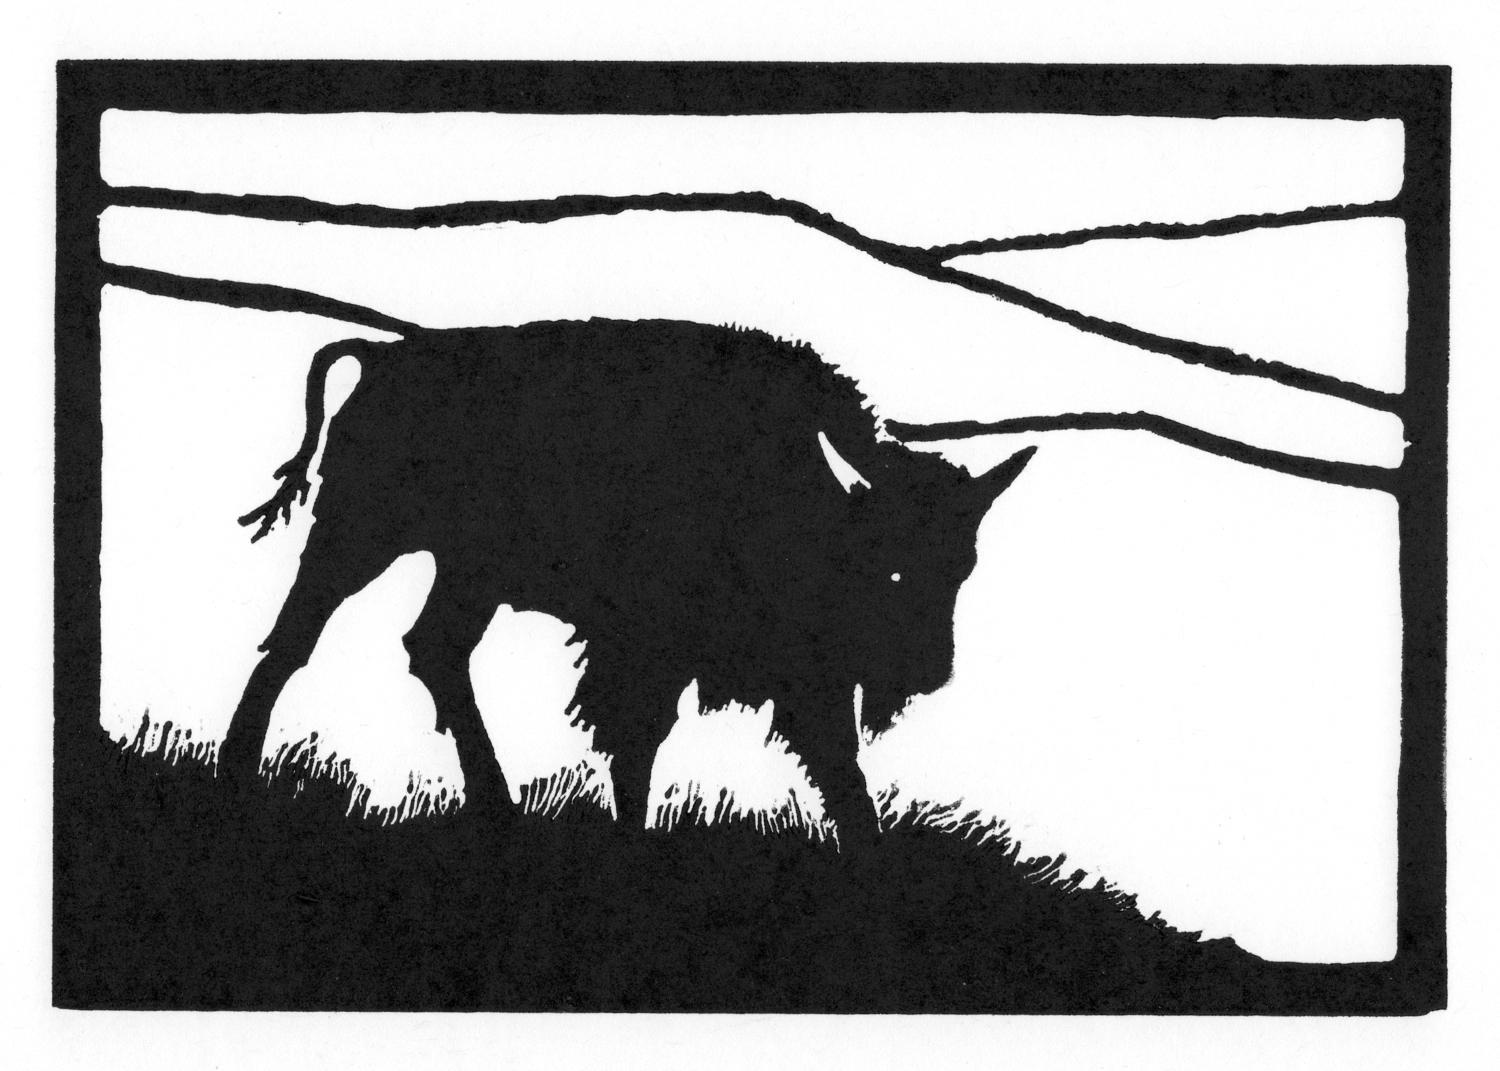 Yearling Bull • © Fred Montague  $48 • image 8 x 5.5 • mat 14 x 11  Edition size: 88 • status: available